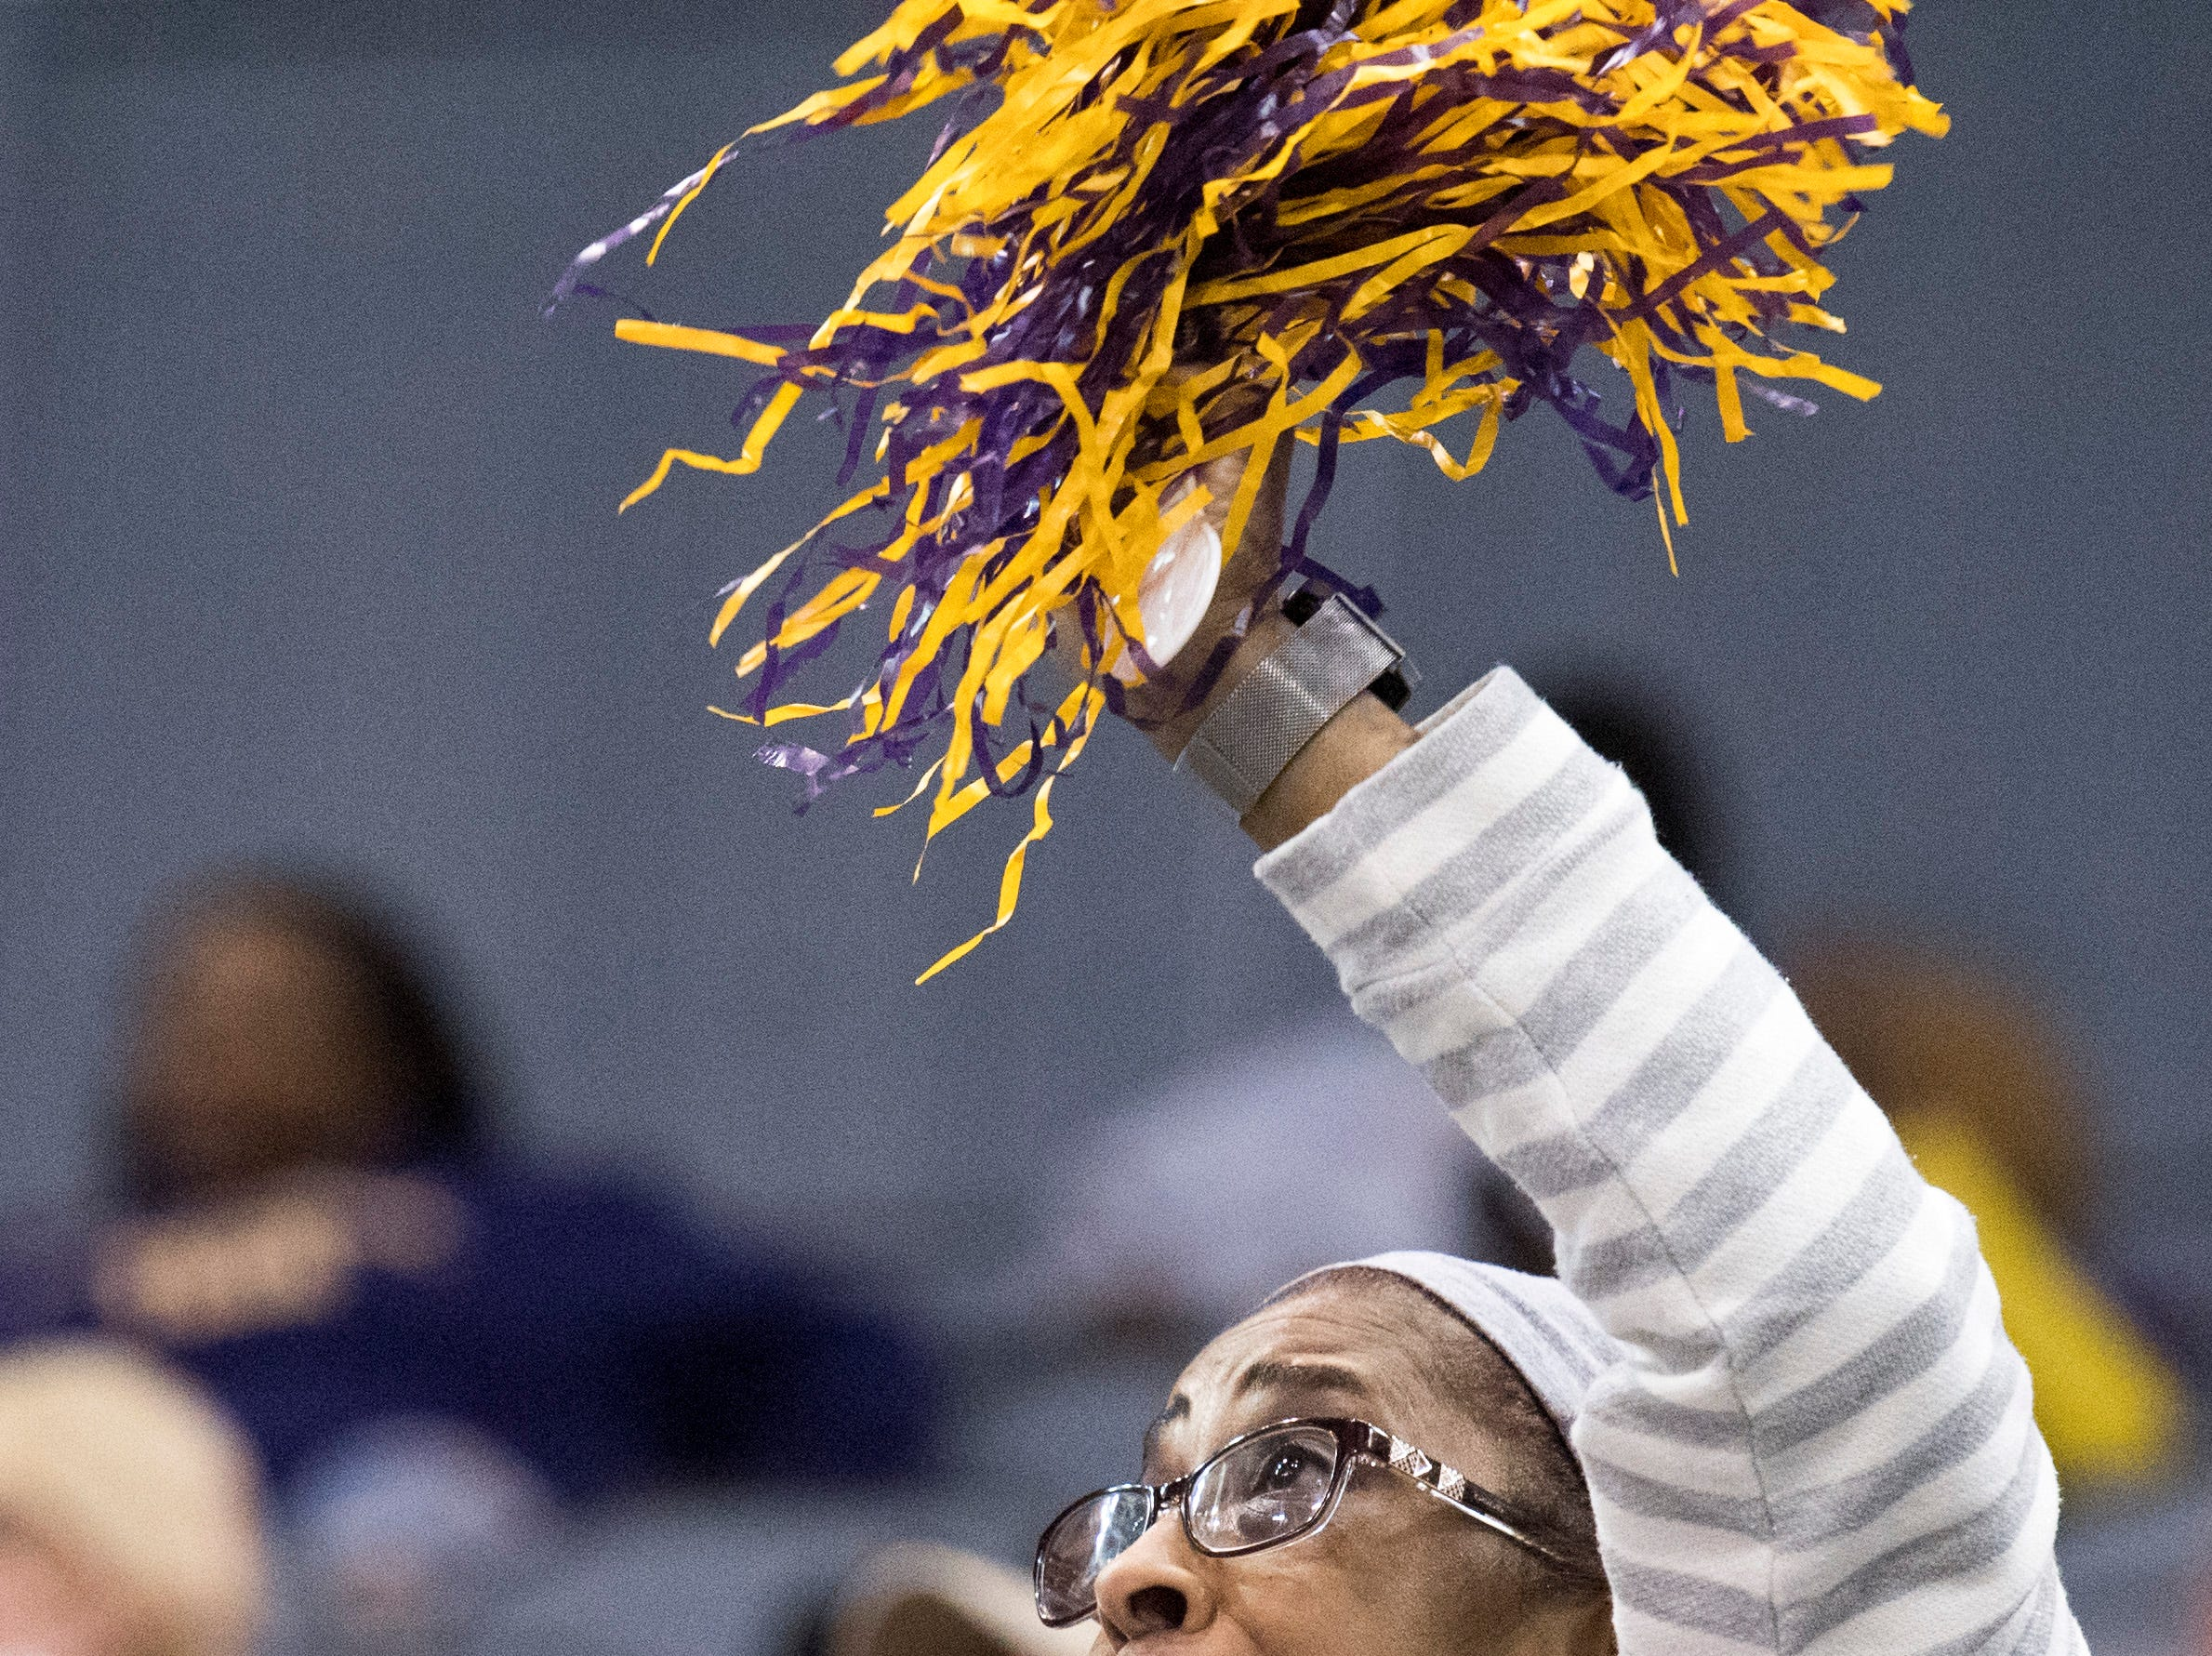 Tennessee Tech super fan Mistie Berry cheers on the Golden Eagles during the Tennessee Tech vs Austin Peay game of the Ohio Valley Conference Tournament at the Ford Center in Evansville, Ind., Thursday, March 7, 2019.